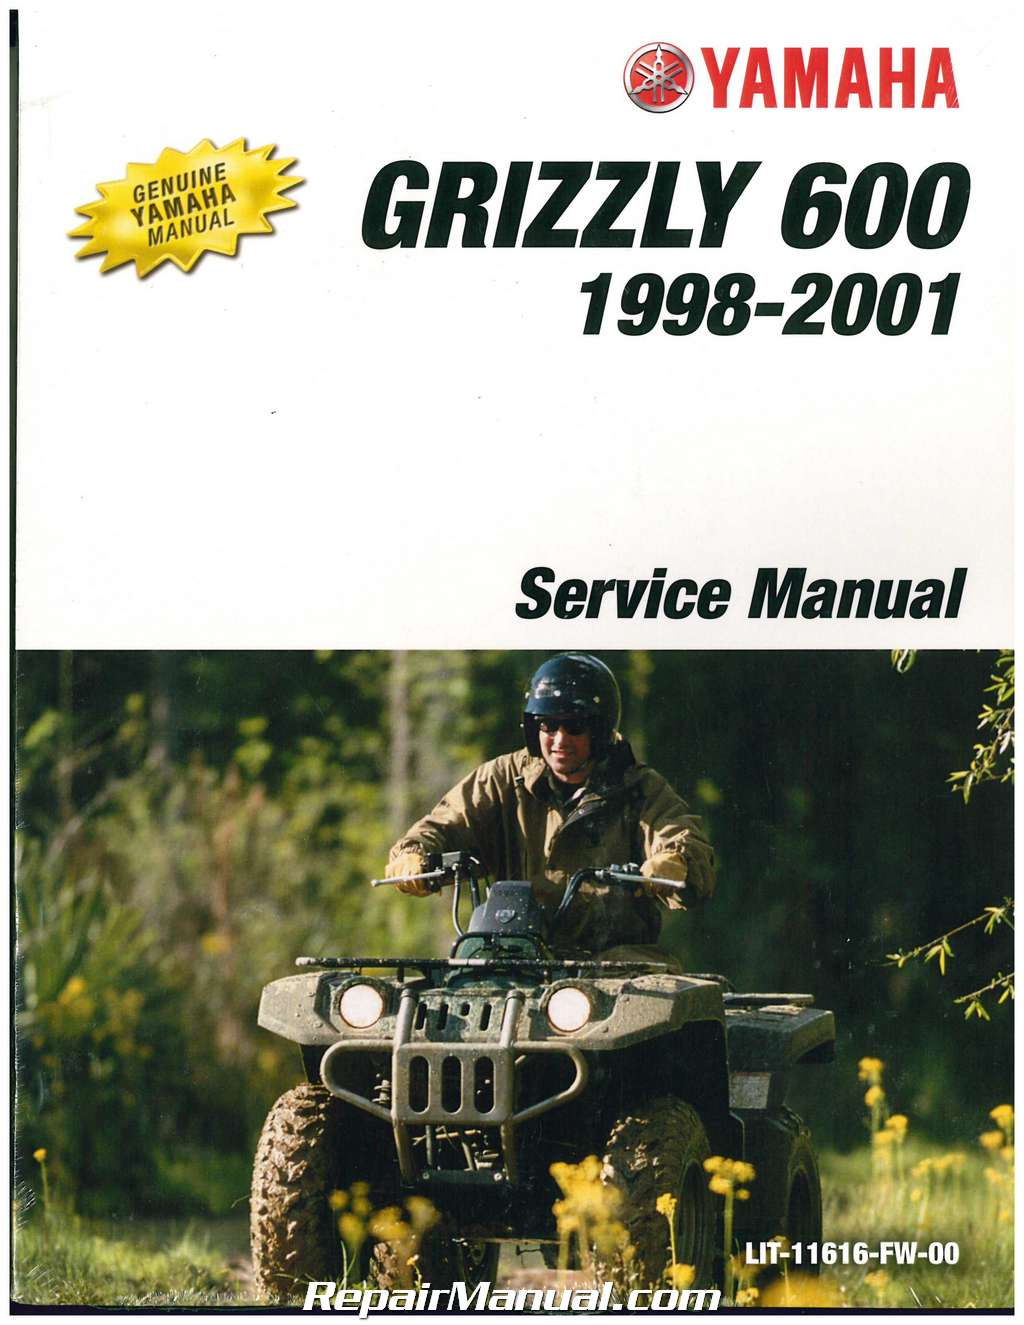 Yamaha Yfm Grizzly Atv Service Manual together with Repairmanualpic as well Doc together with  on yamaha yfm fw service manual page